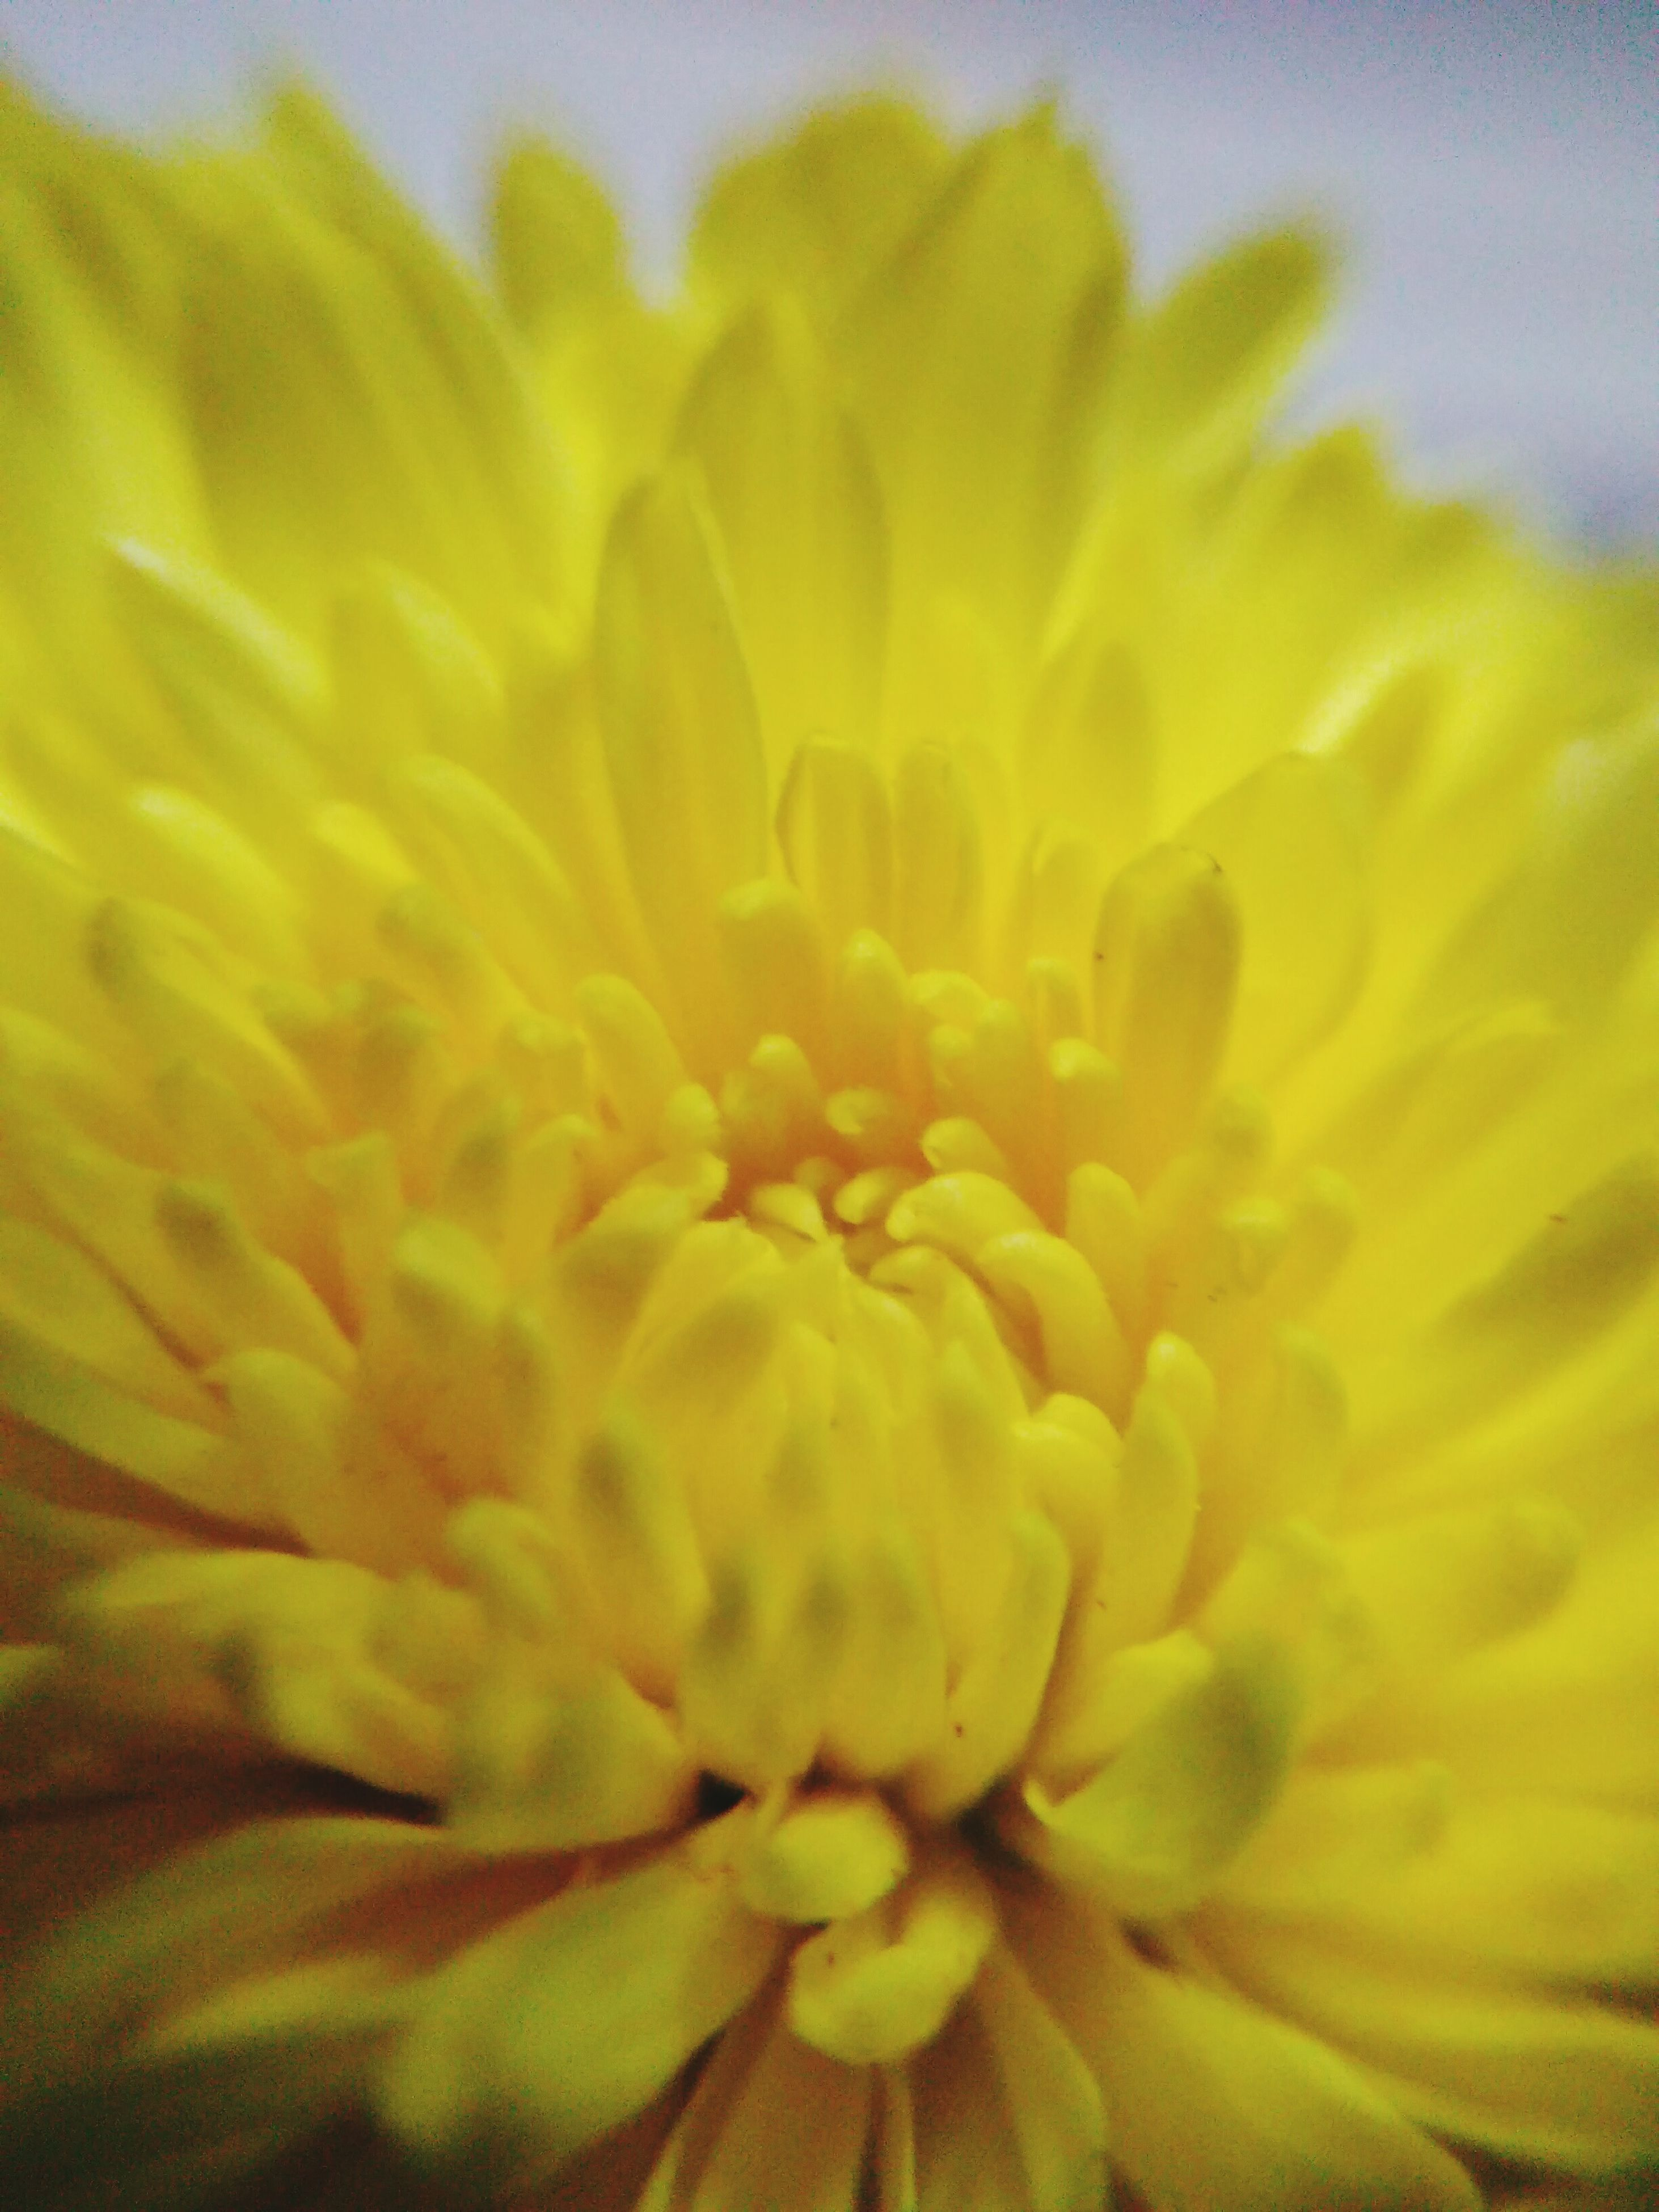 flower, freshness, petal, flower head, fragility, yellow, beauty in nature, growth, close-up, nature, single flower, pollen, blooming, focus on foreground, plant, stamen, in bloom, selective focus, extreme close-up, blossom